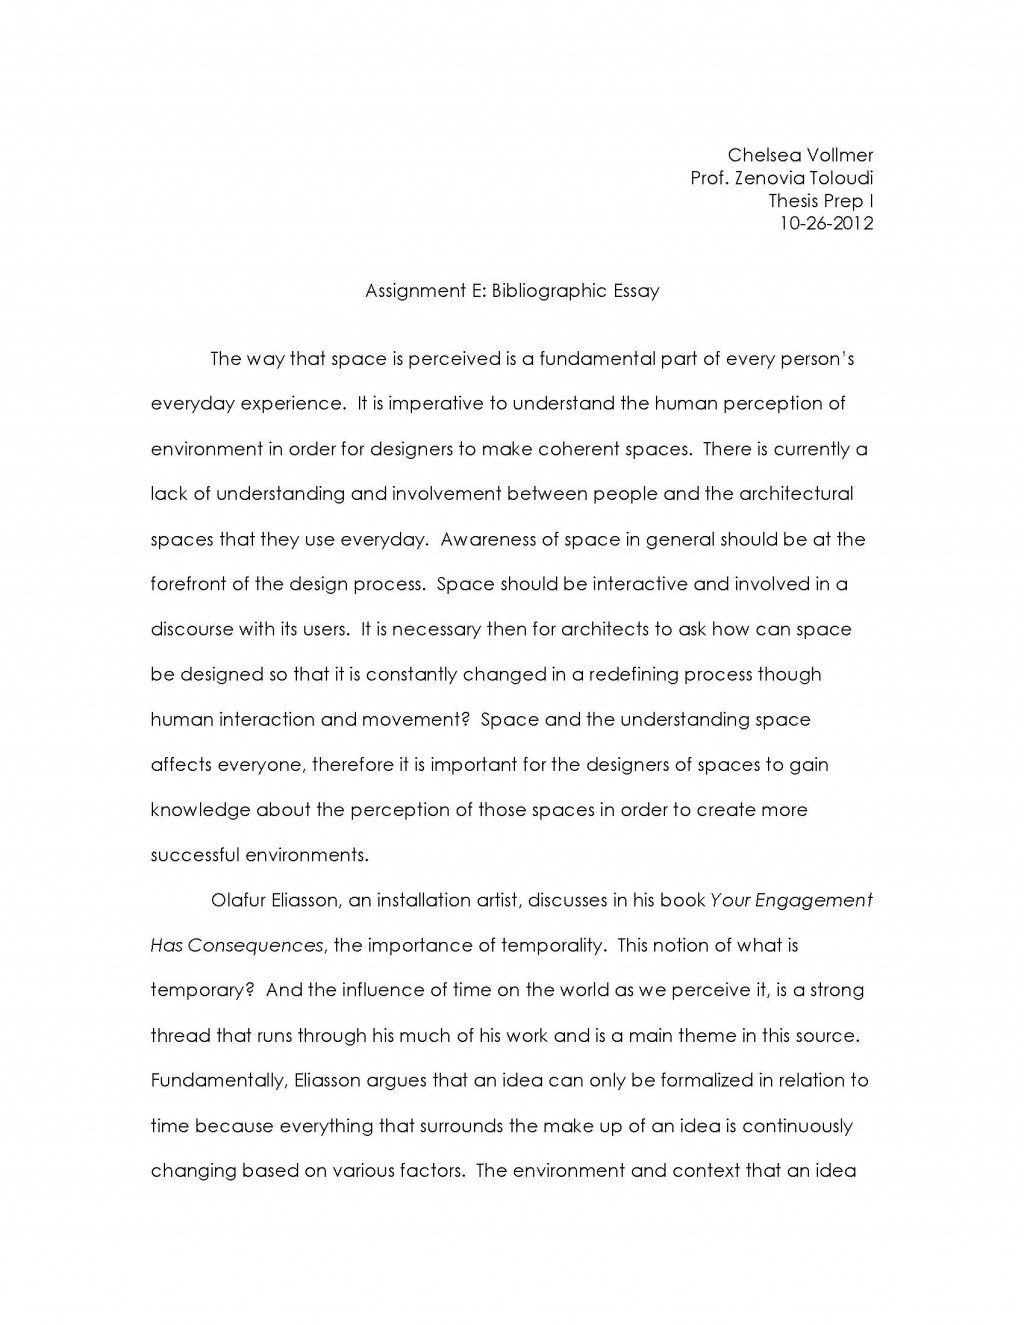 005 Satire Essays Assignment E Page 12 Excellent Essay Examples On Abortion Gun Control Obesity Large